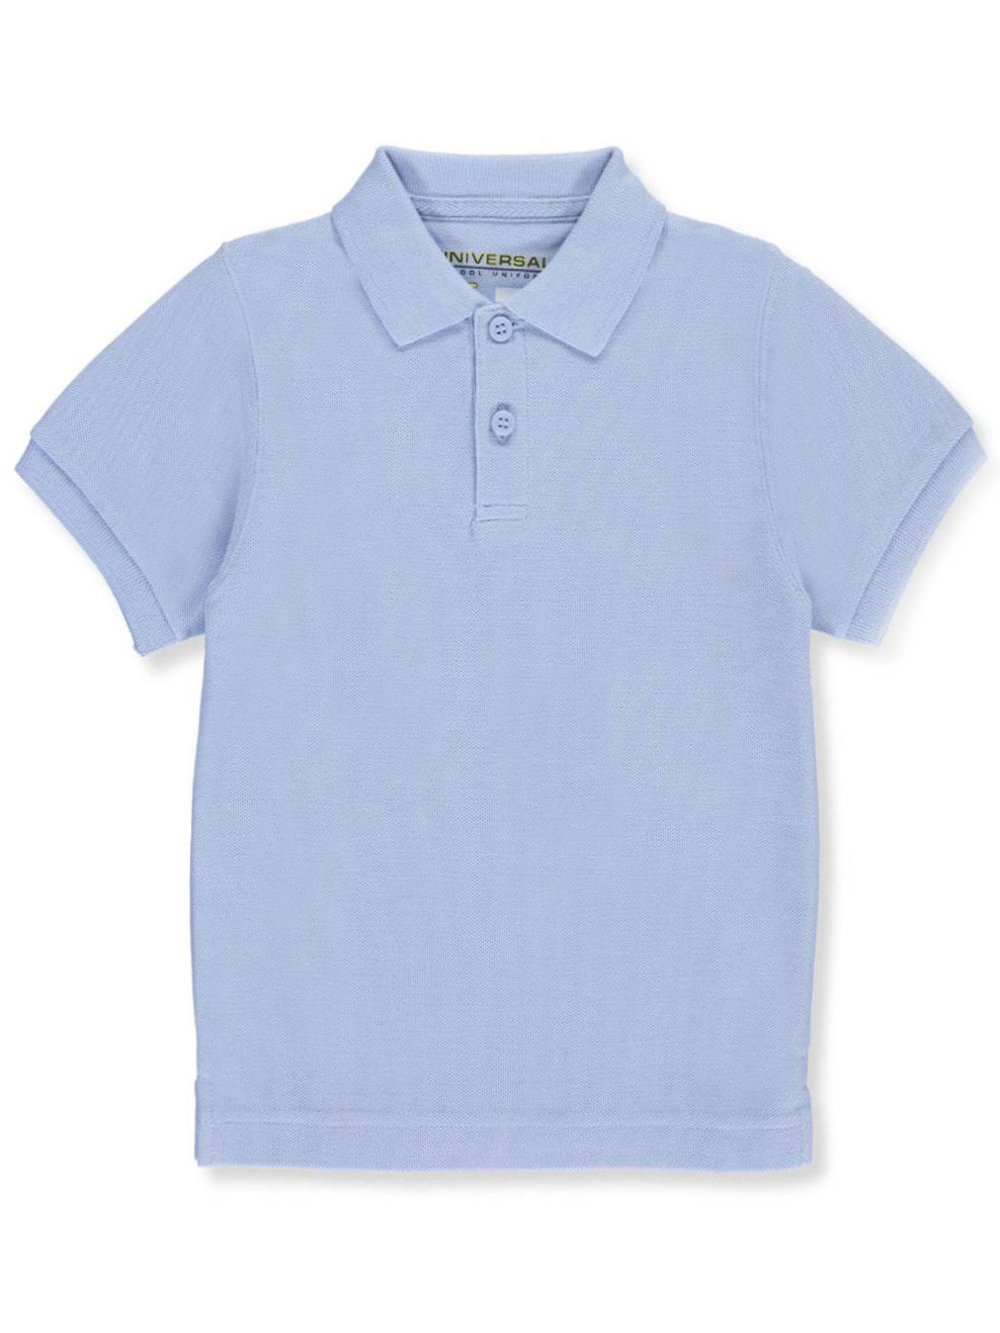 Universal Unisex S/S Pique Polo (Adult Sizes S - 4XL)